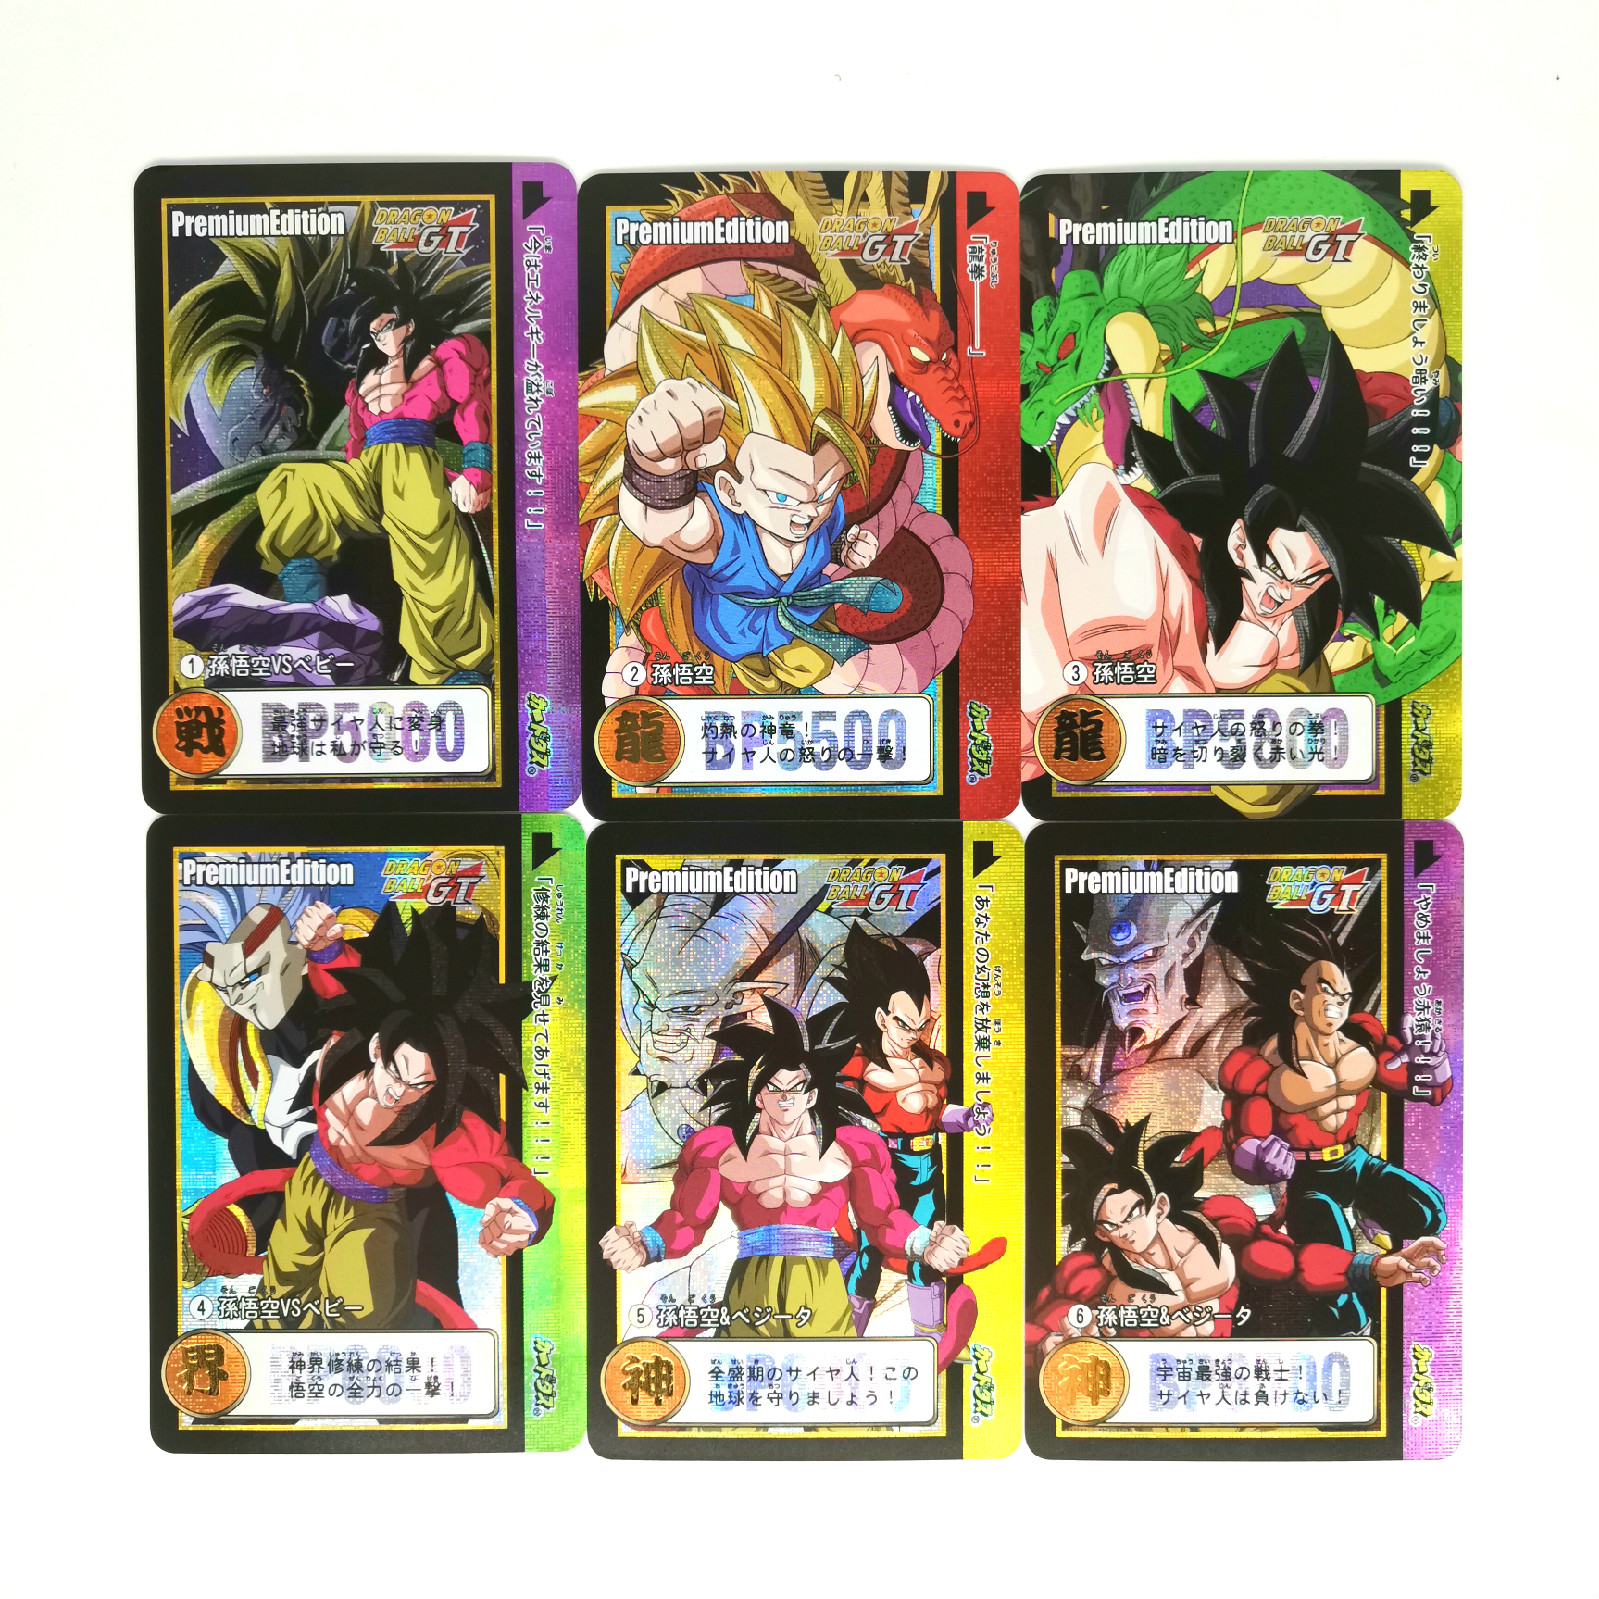 9pcs Super Dragon Ball GT Super Saiyan 4 Bronzing Heroes Battle Card Ultra Instinct Goku Vegeta Game Collection Cards